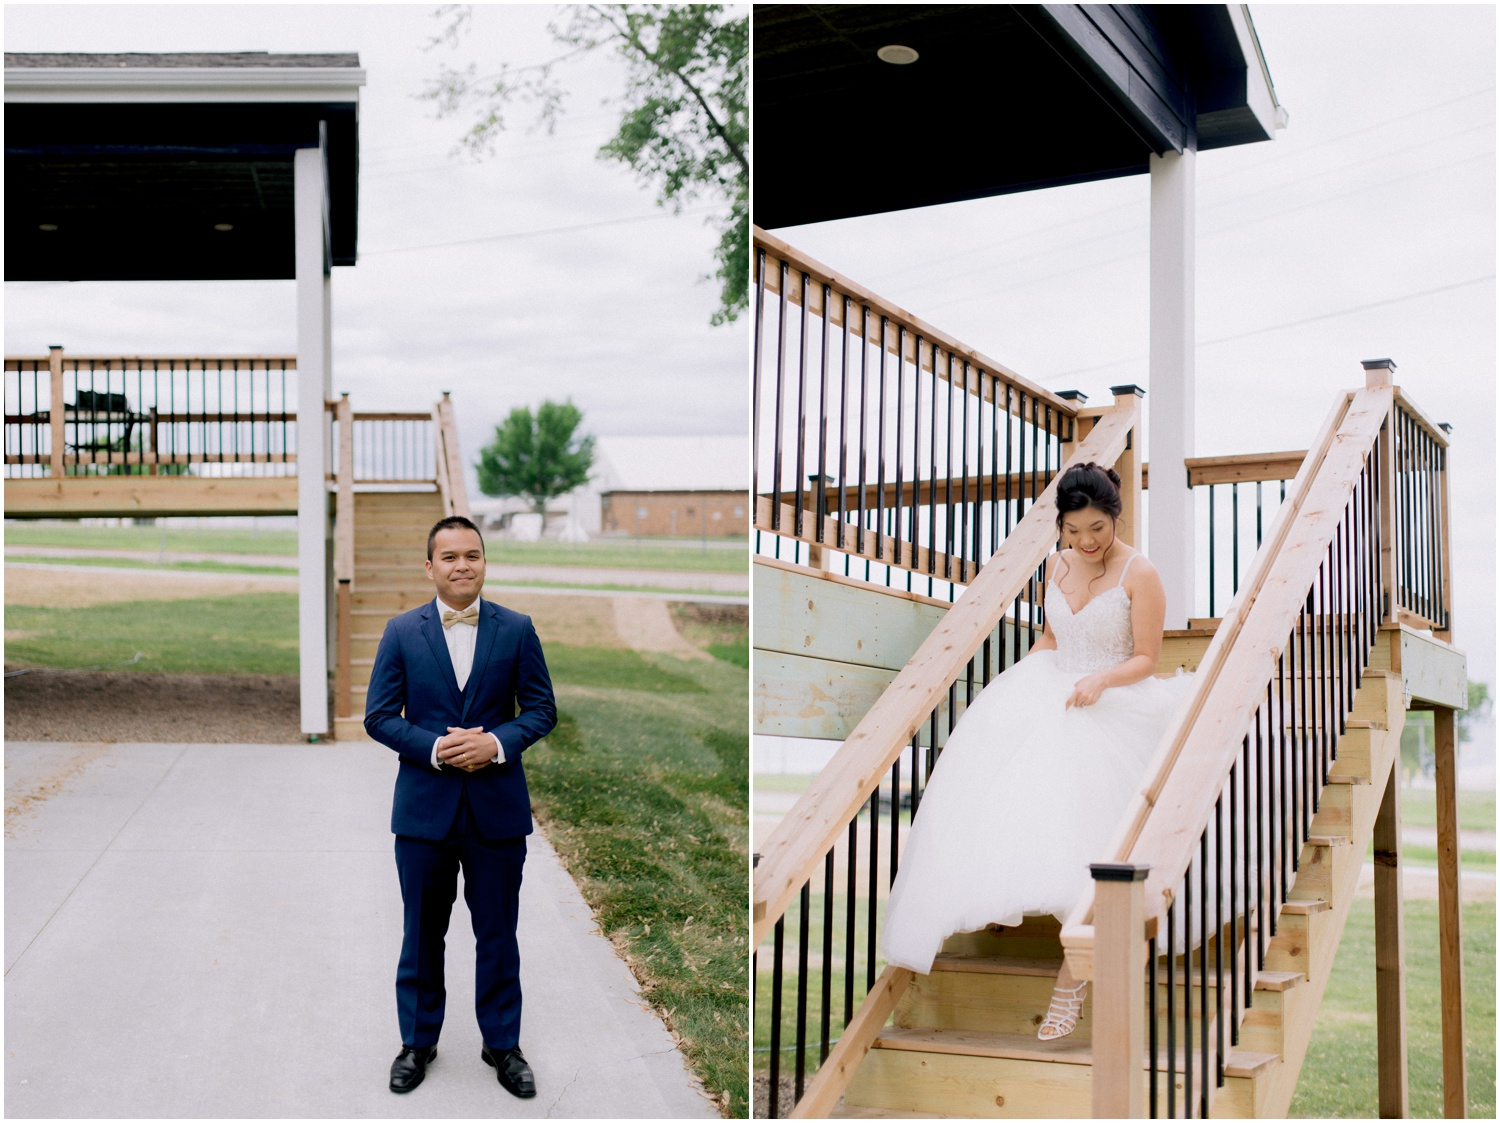 Andrew Ferren Photography-Iowa Wedding Photographer Des Moines Iowa-Iowa State Fairgrounds_0010.jpg